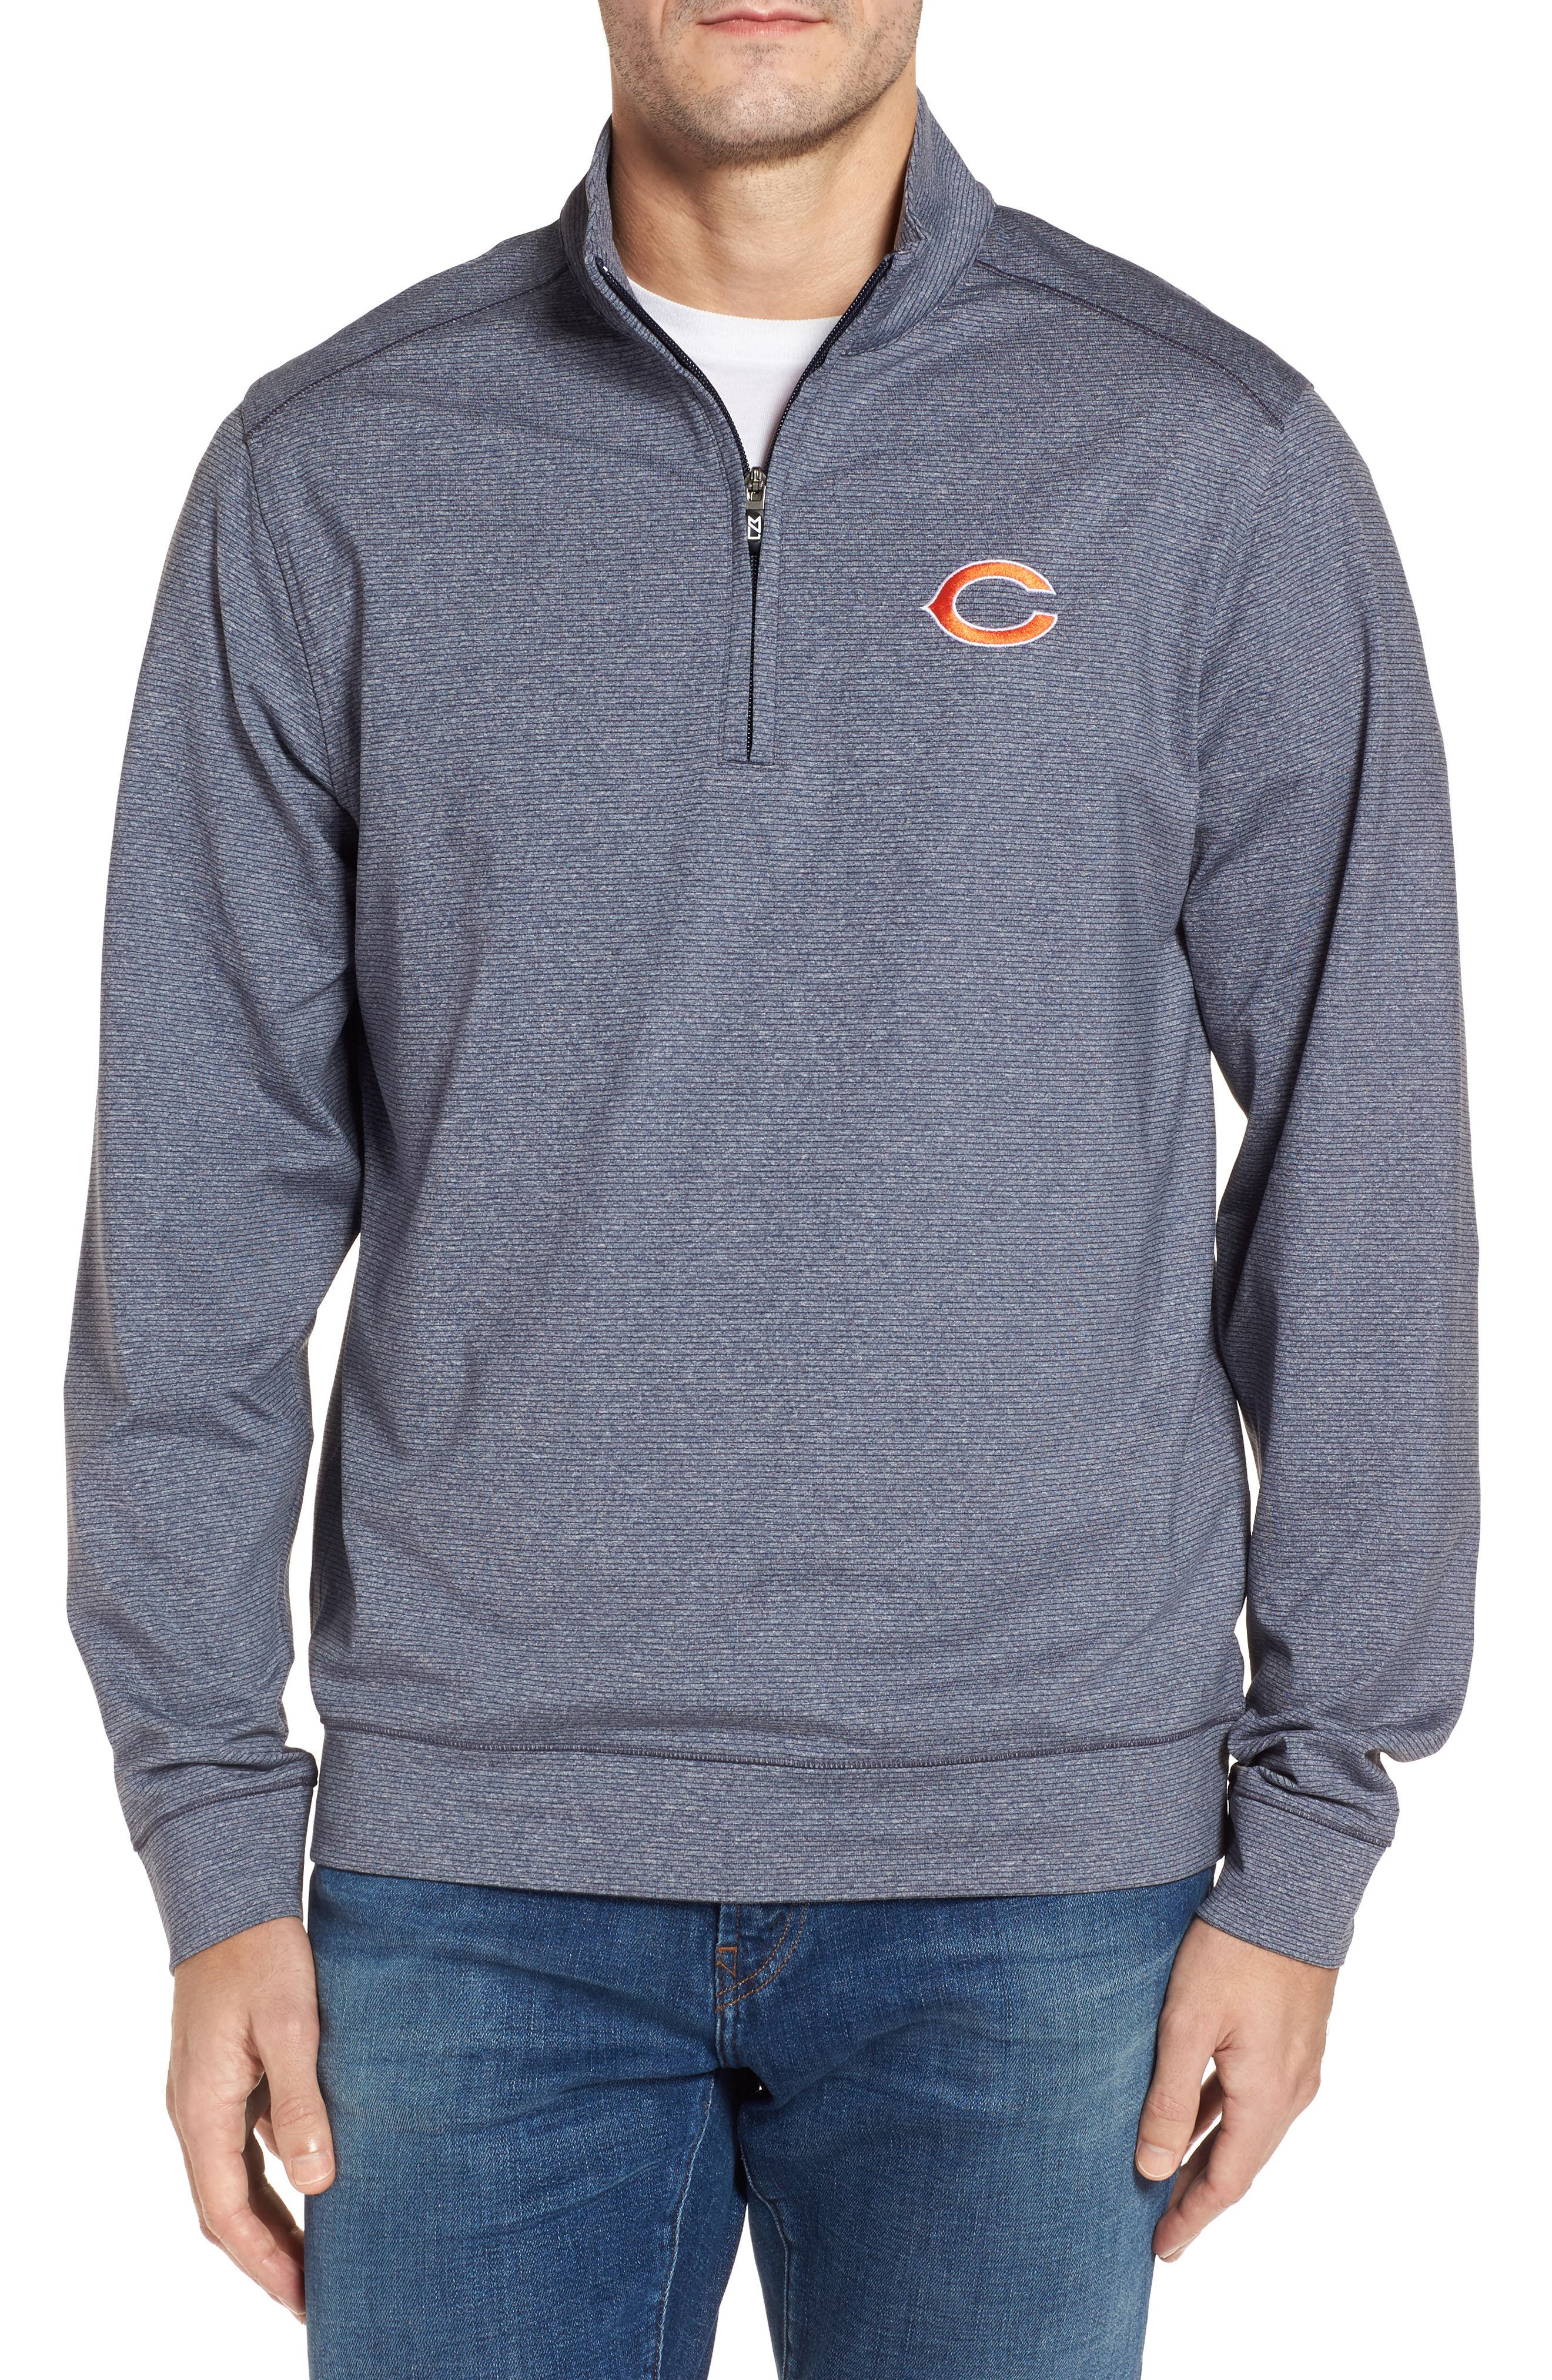 Shoreline - Chicago Bears Half Zip Pullover,                         Main,                         color, 976